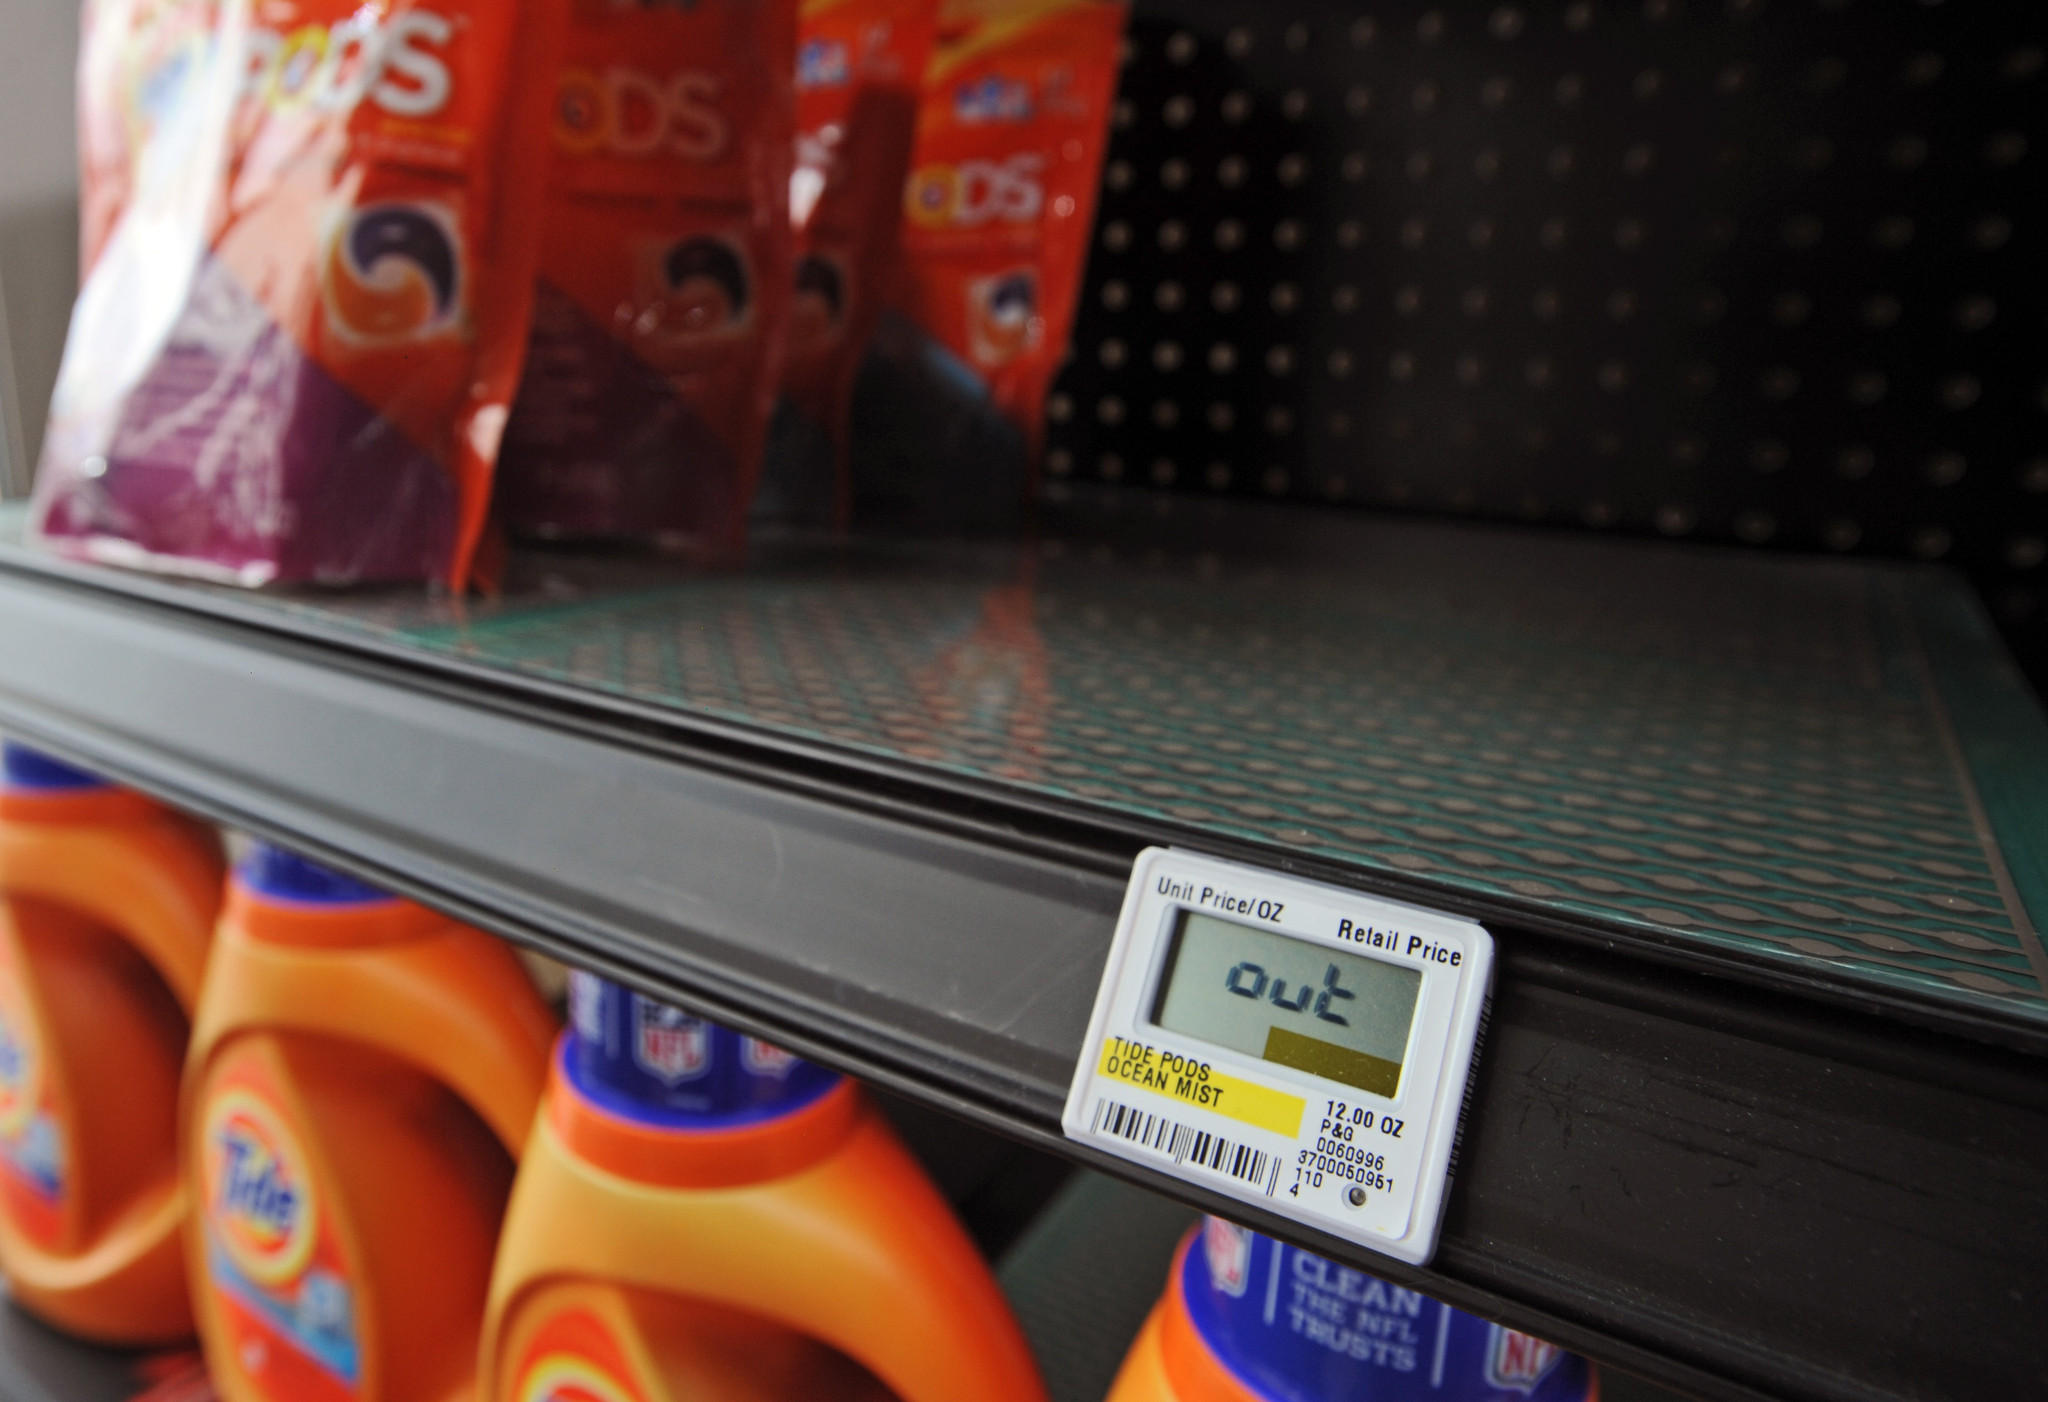 Annapolis Firm And Panasonic Look To Electronic Shelf